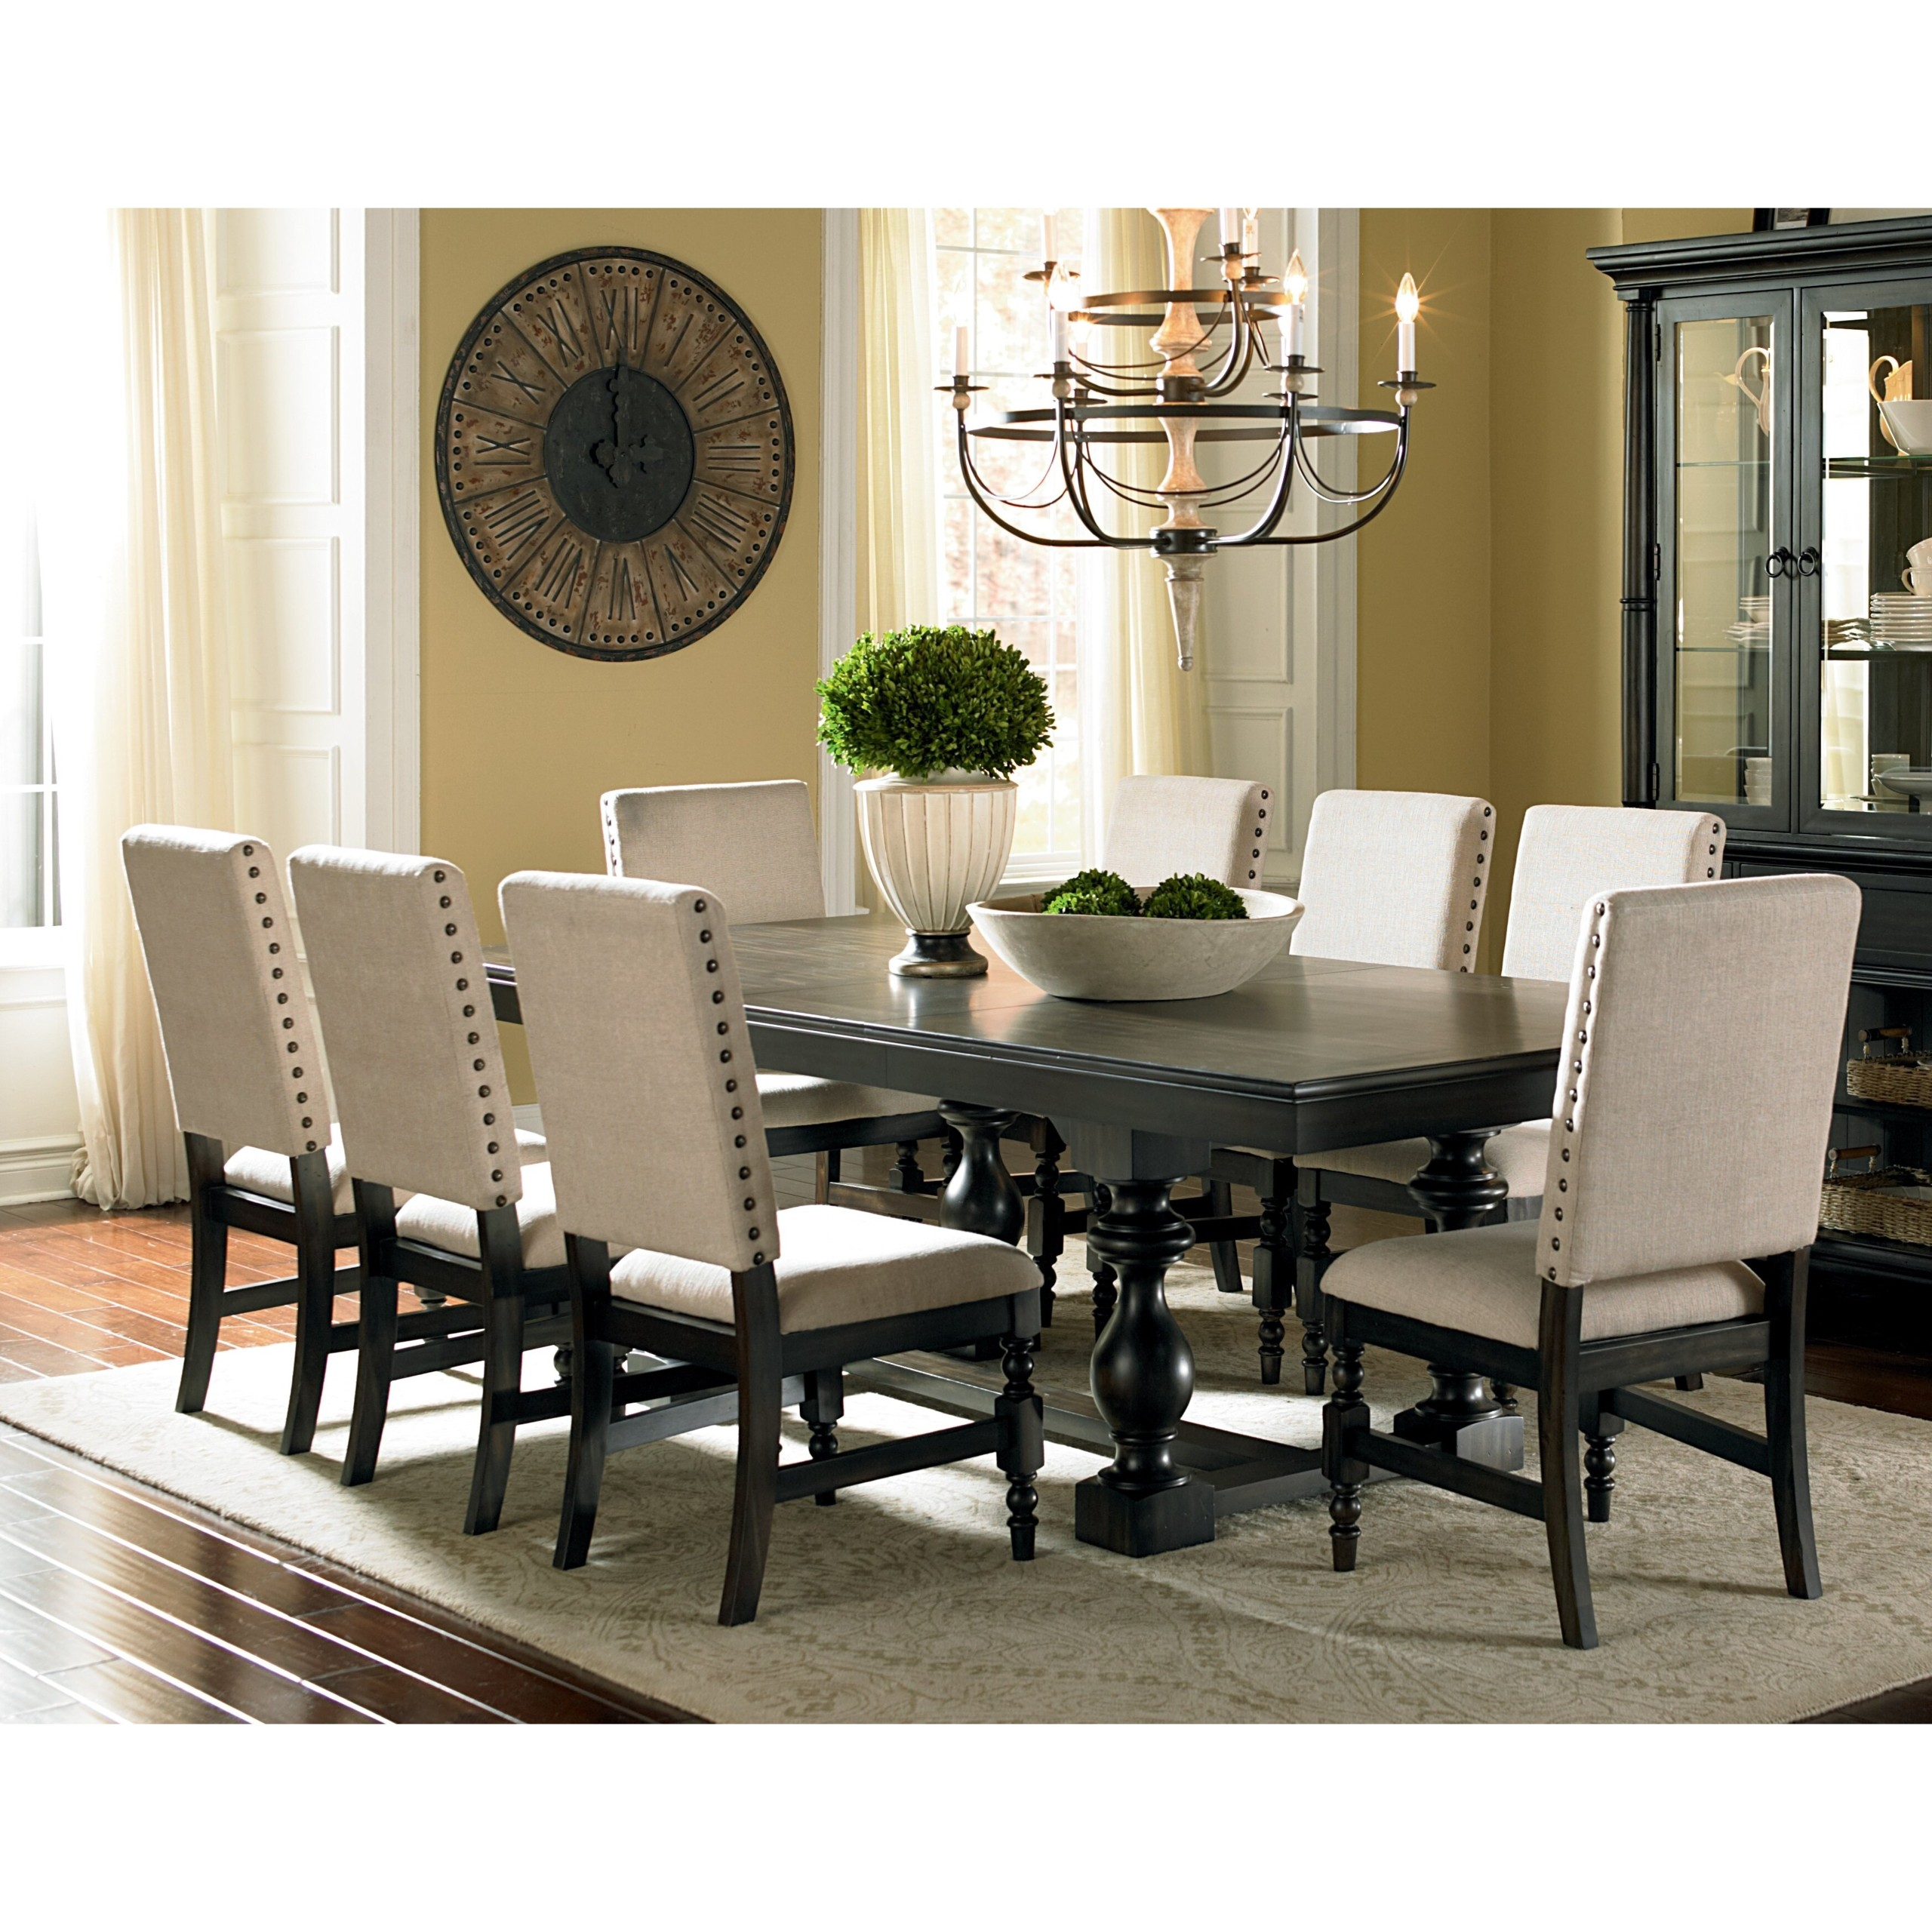 black living room tables paint colors for with oak trim dining extension leaves ideas on foter table leaf